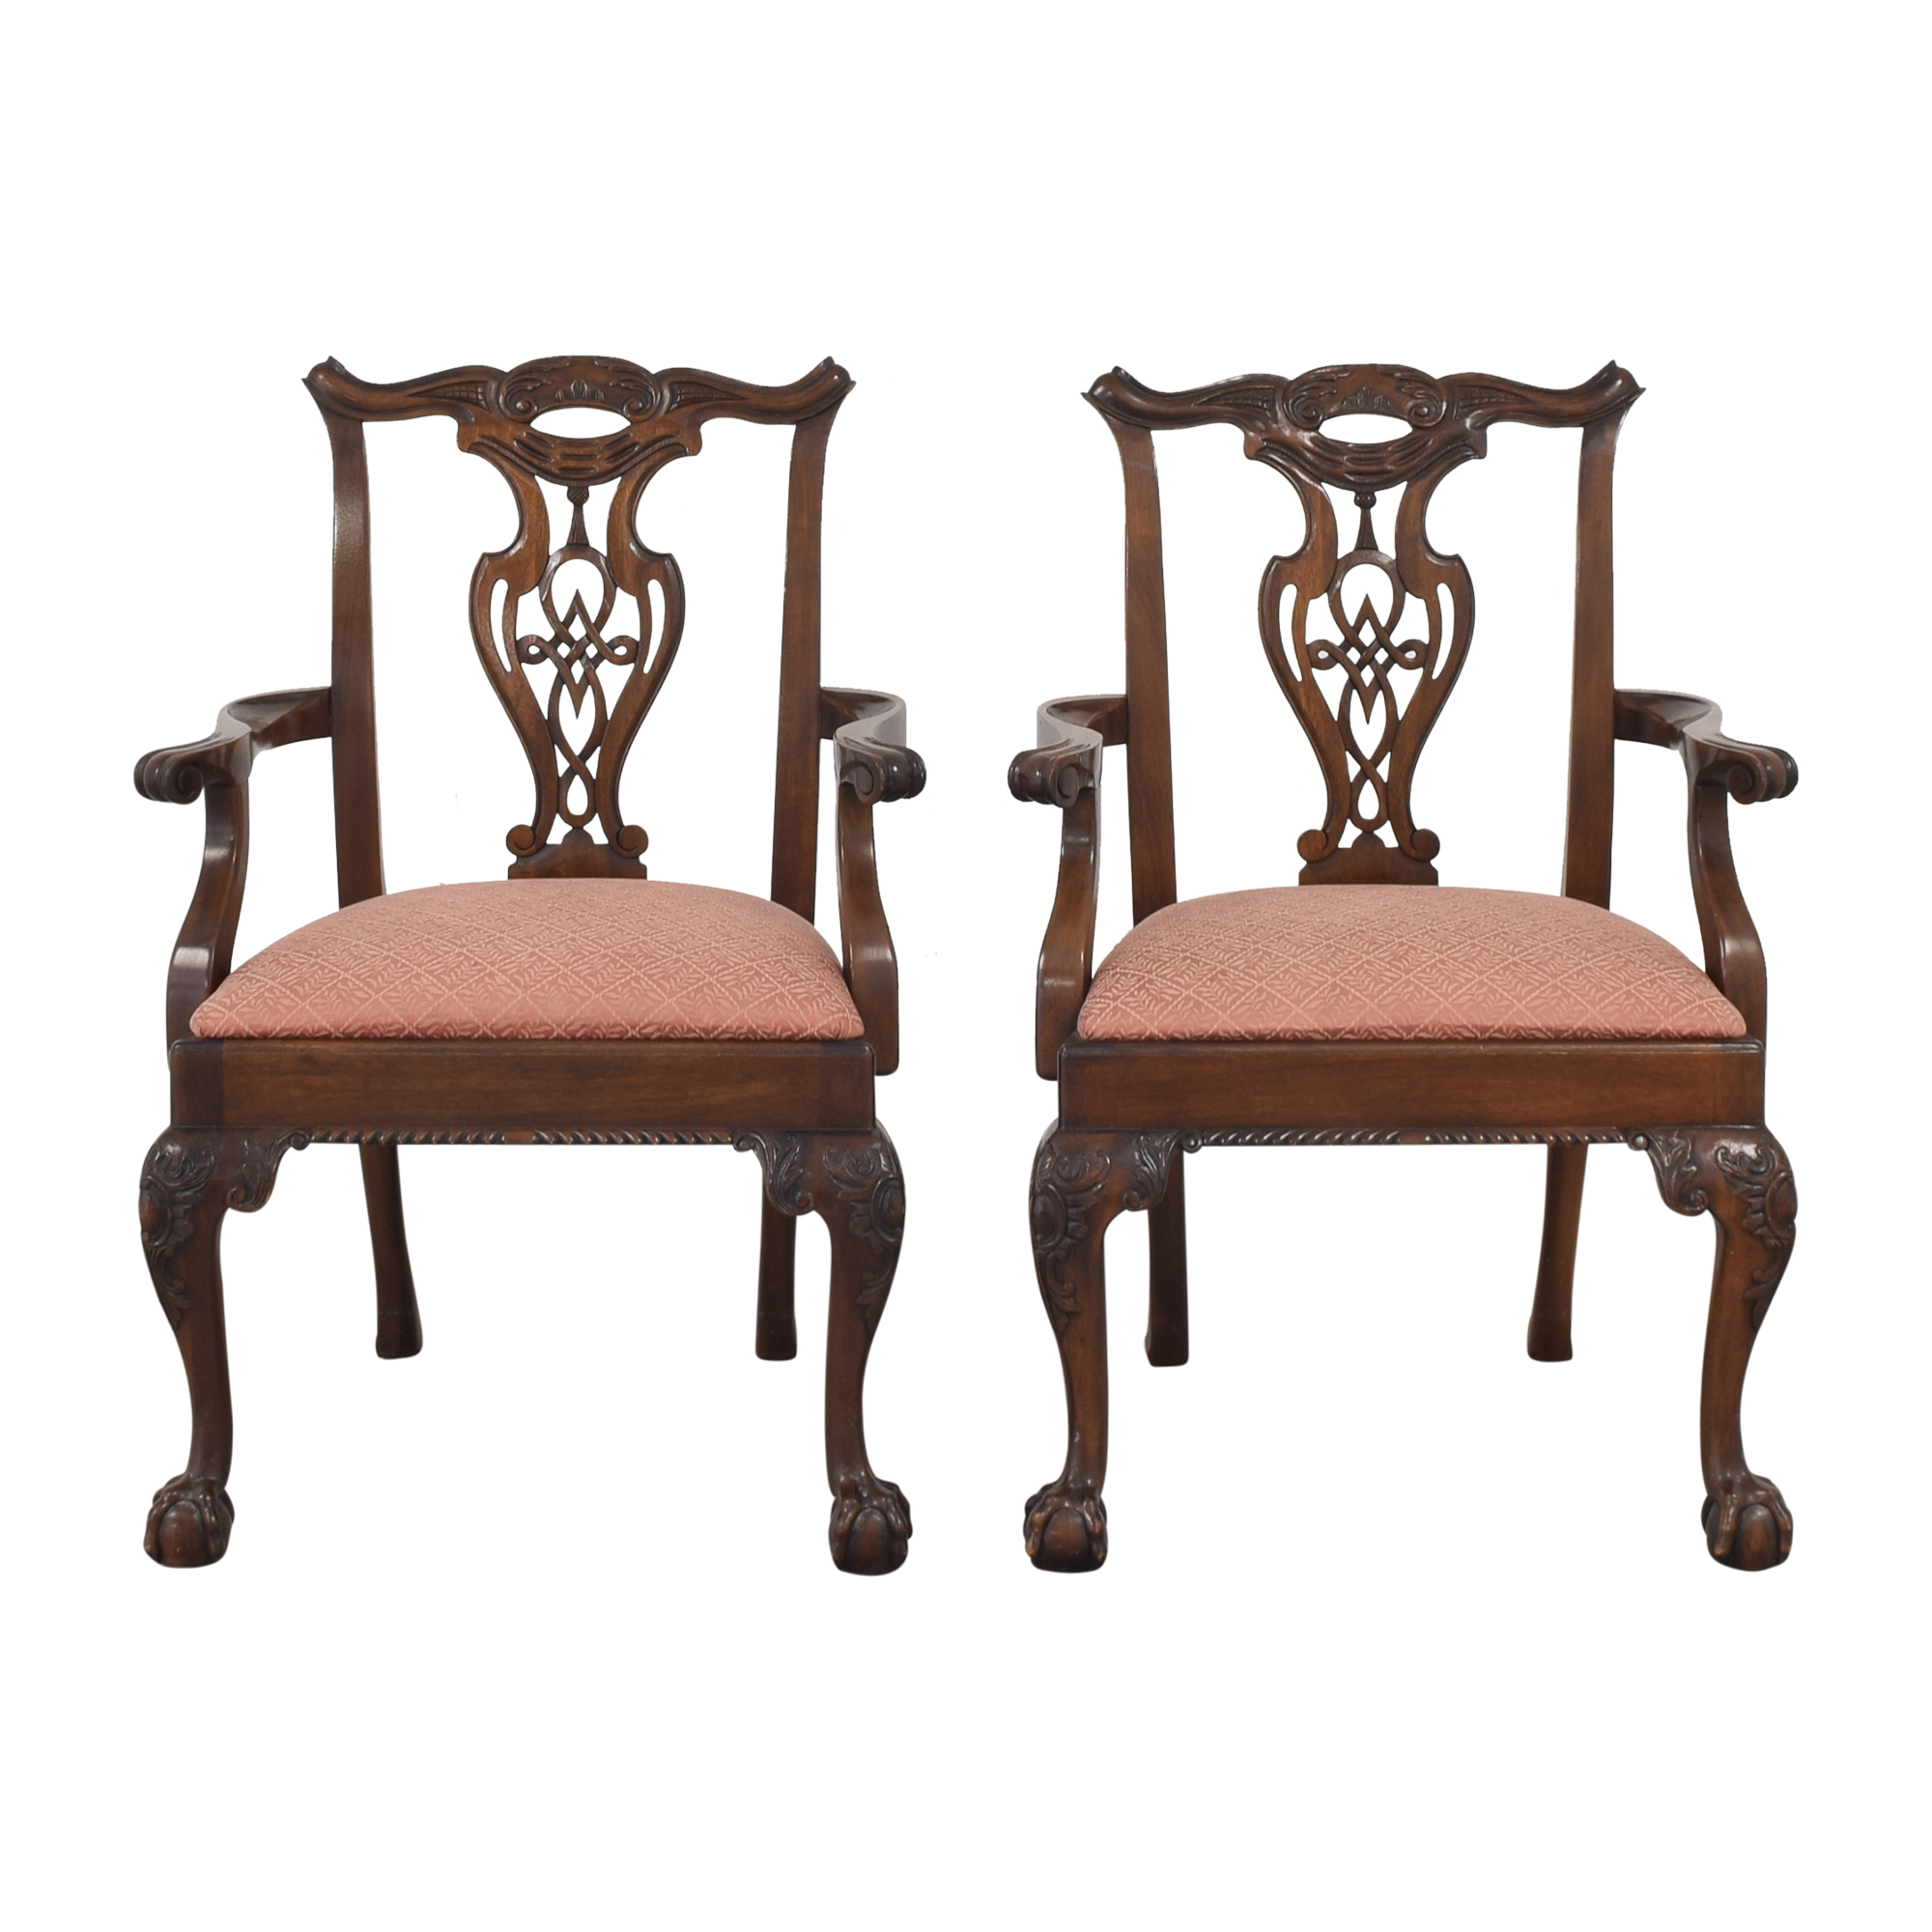 Henredon Furniture Henredon Heirloom Dining Chairs ct